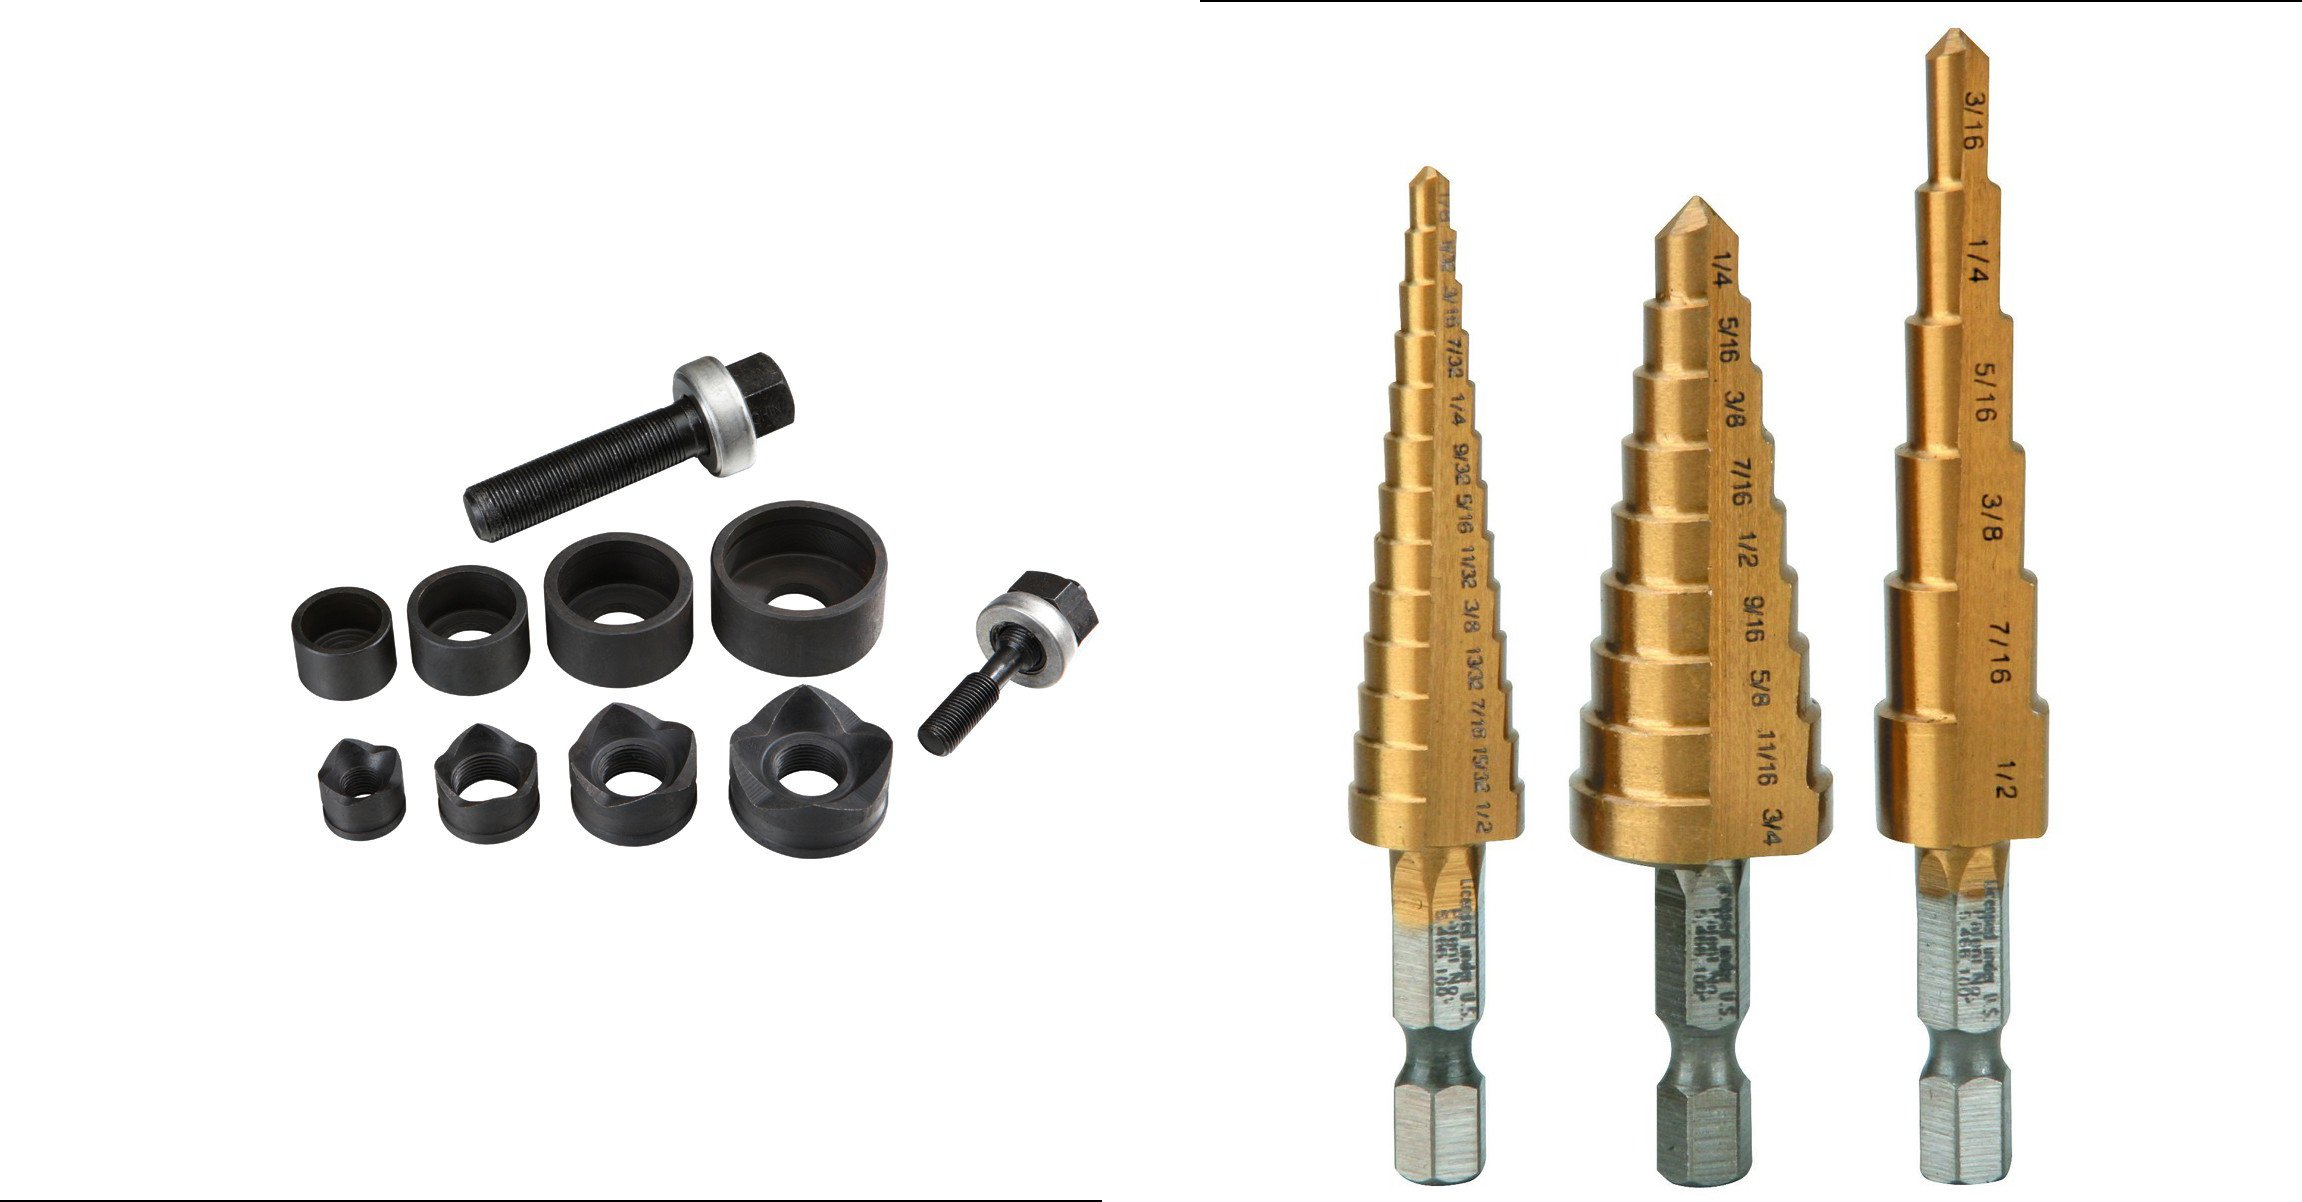 Manual Knockout Punch Kit with 3 Pc Titanium Nitride Coated High Speed Steel Step Drill Bit Set Bundle